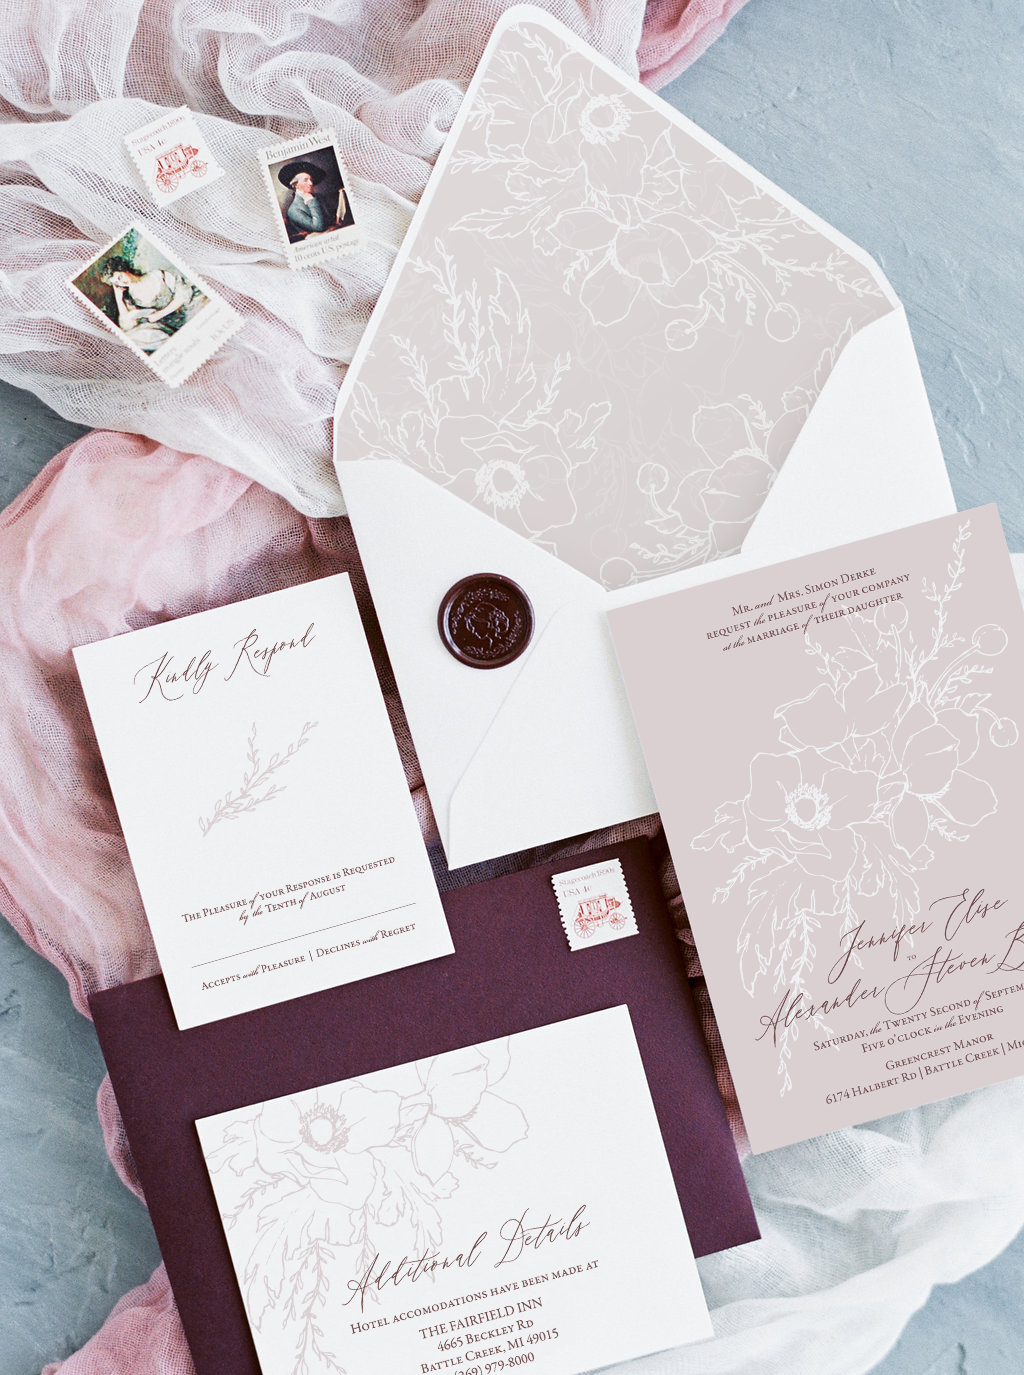 5 Steps For Starting A Wedding Stationery Business Plus Bonus Tip